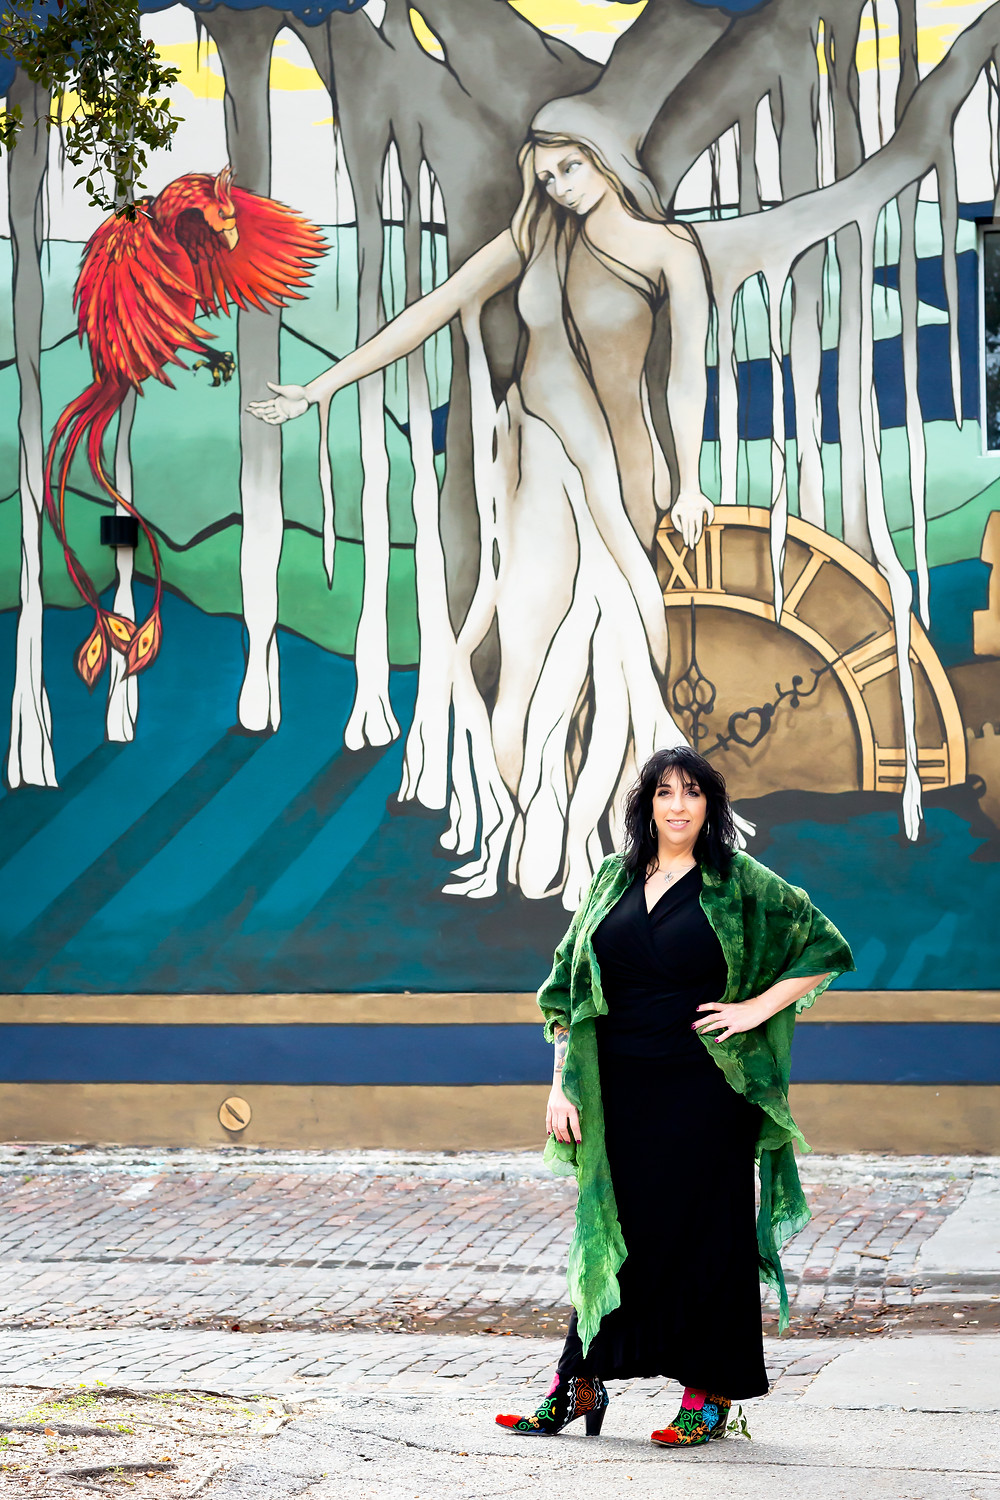 Traci Kanaan in front of a mural in St Petersburg, FL